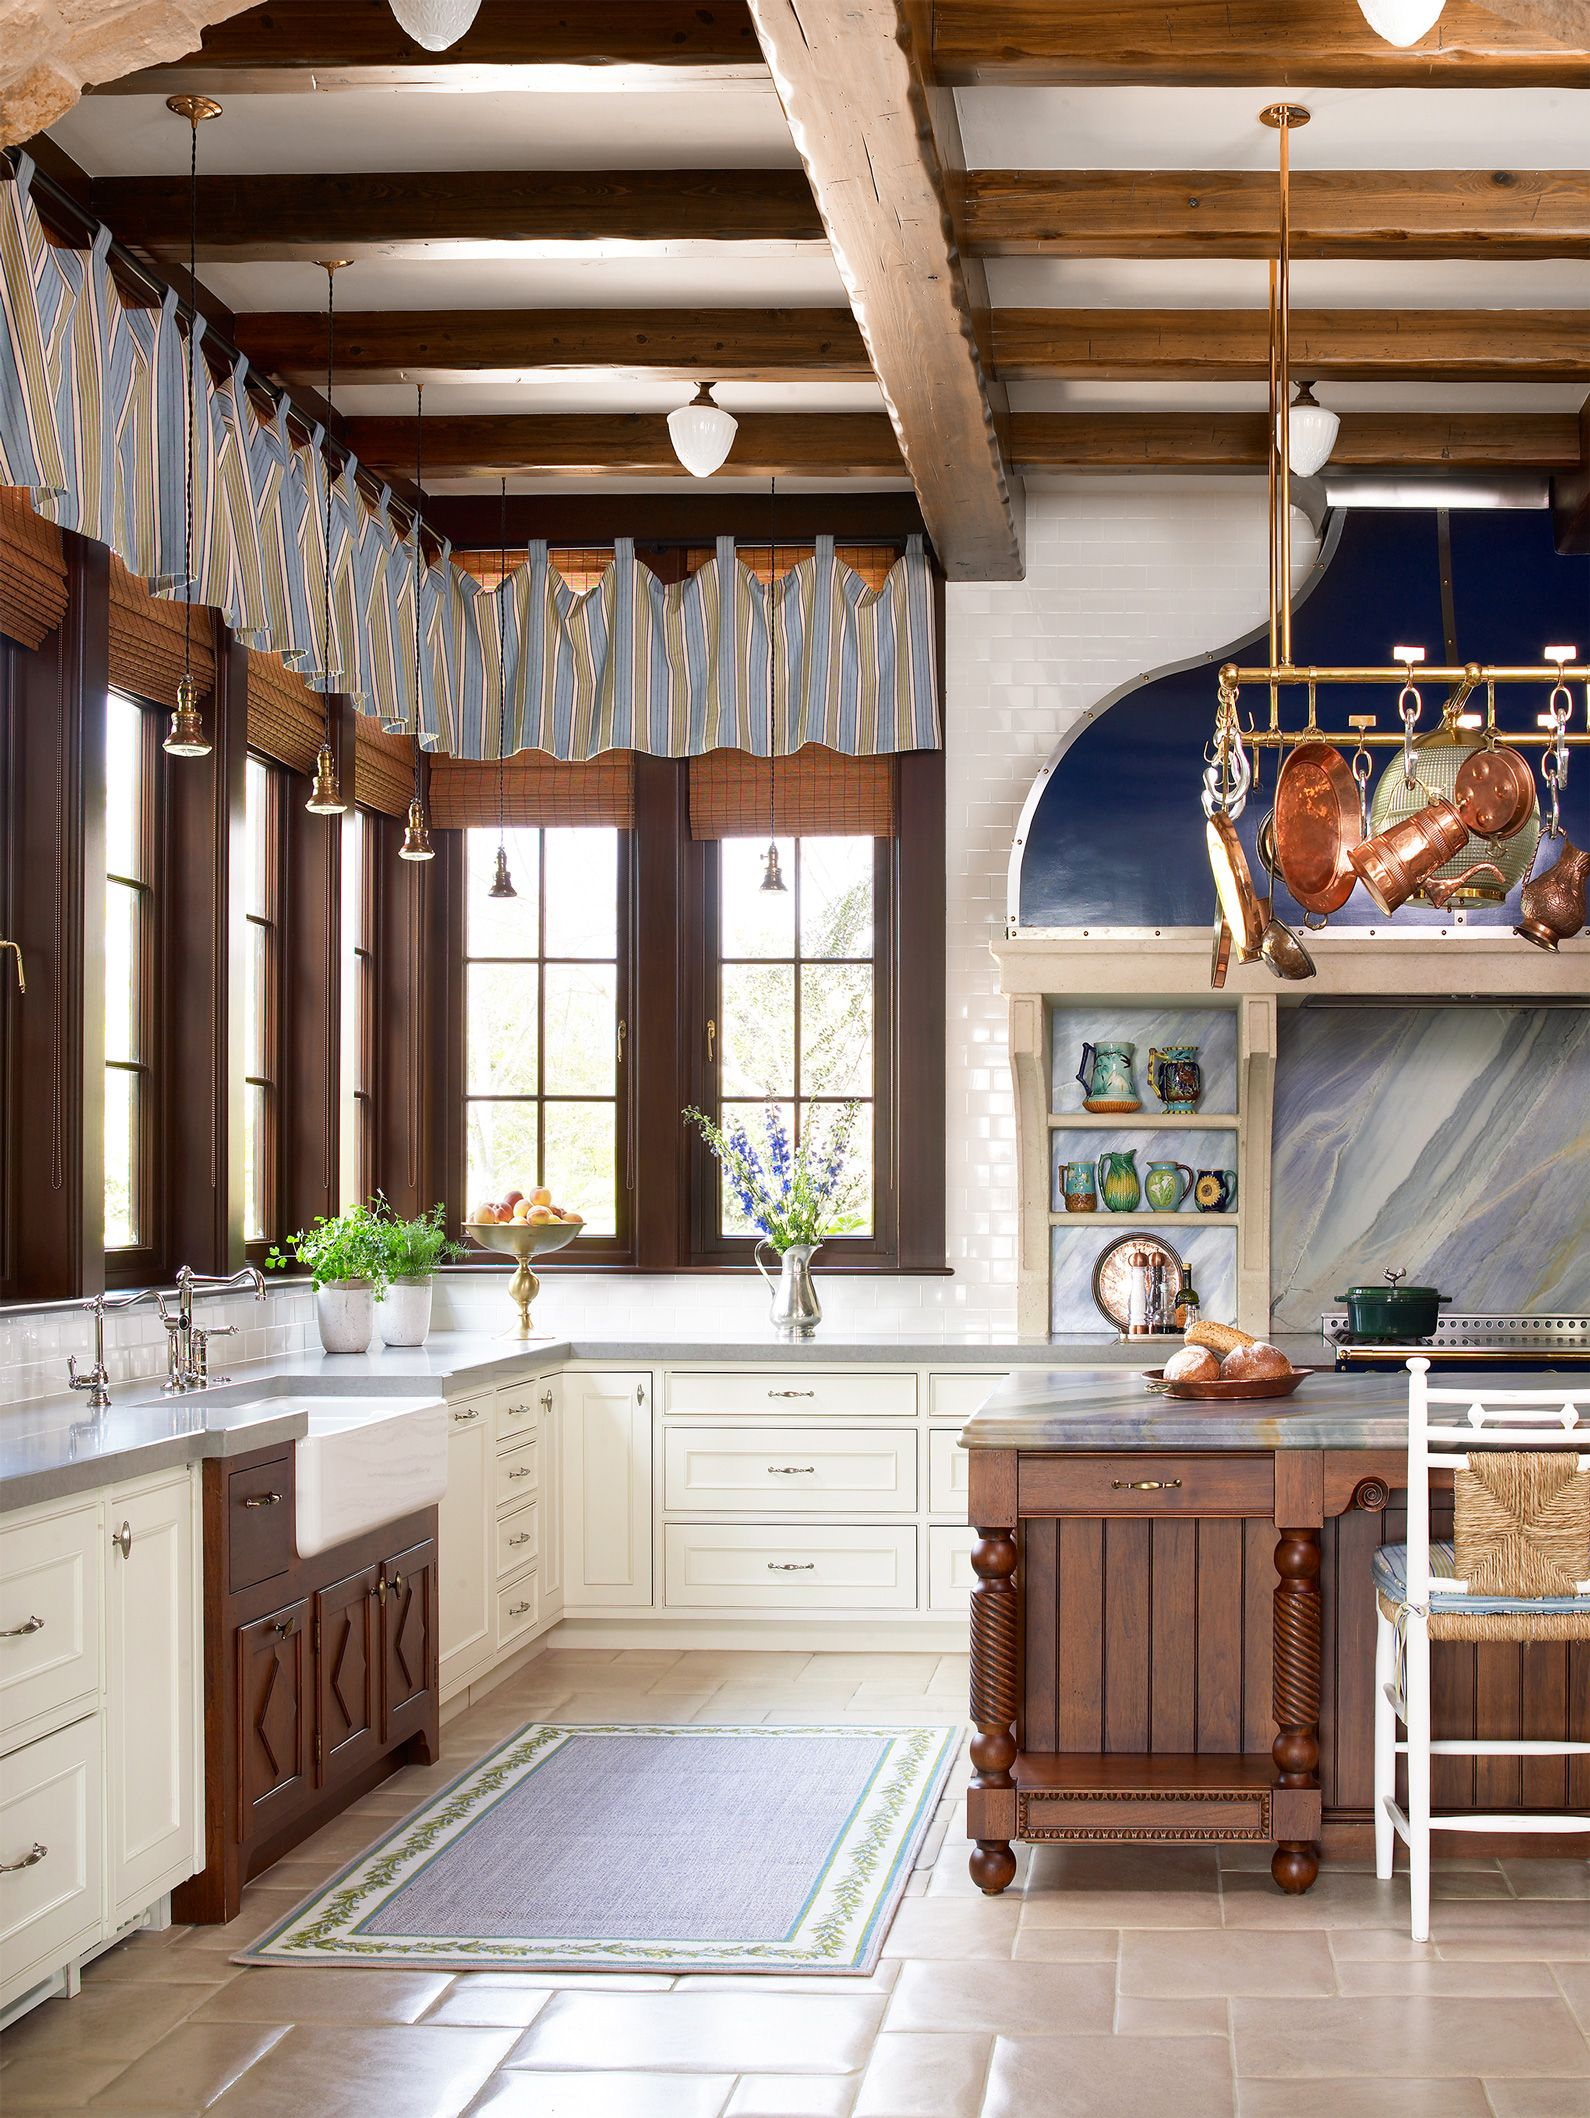 17 rustic window treatments you ll want to try now country kitchen designs rustic kitchen on farmhouse kitchen valance ideas id=78059